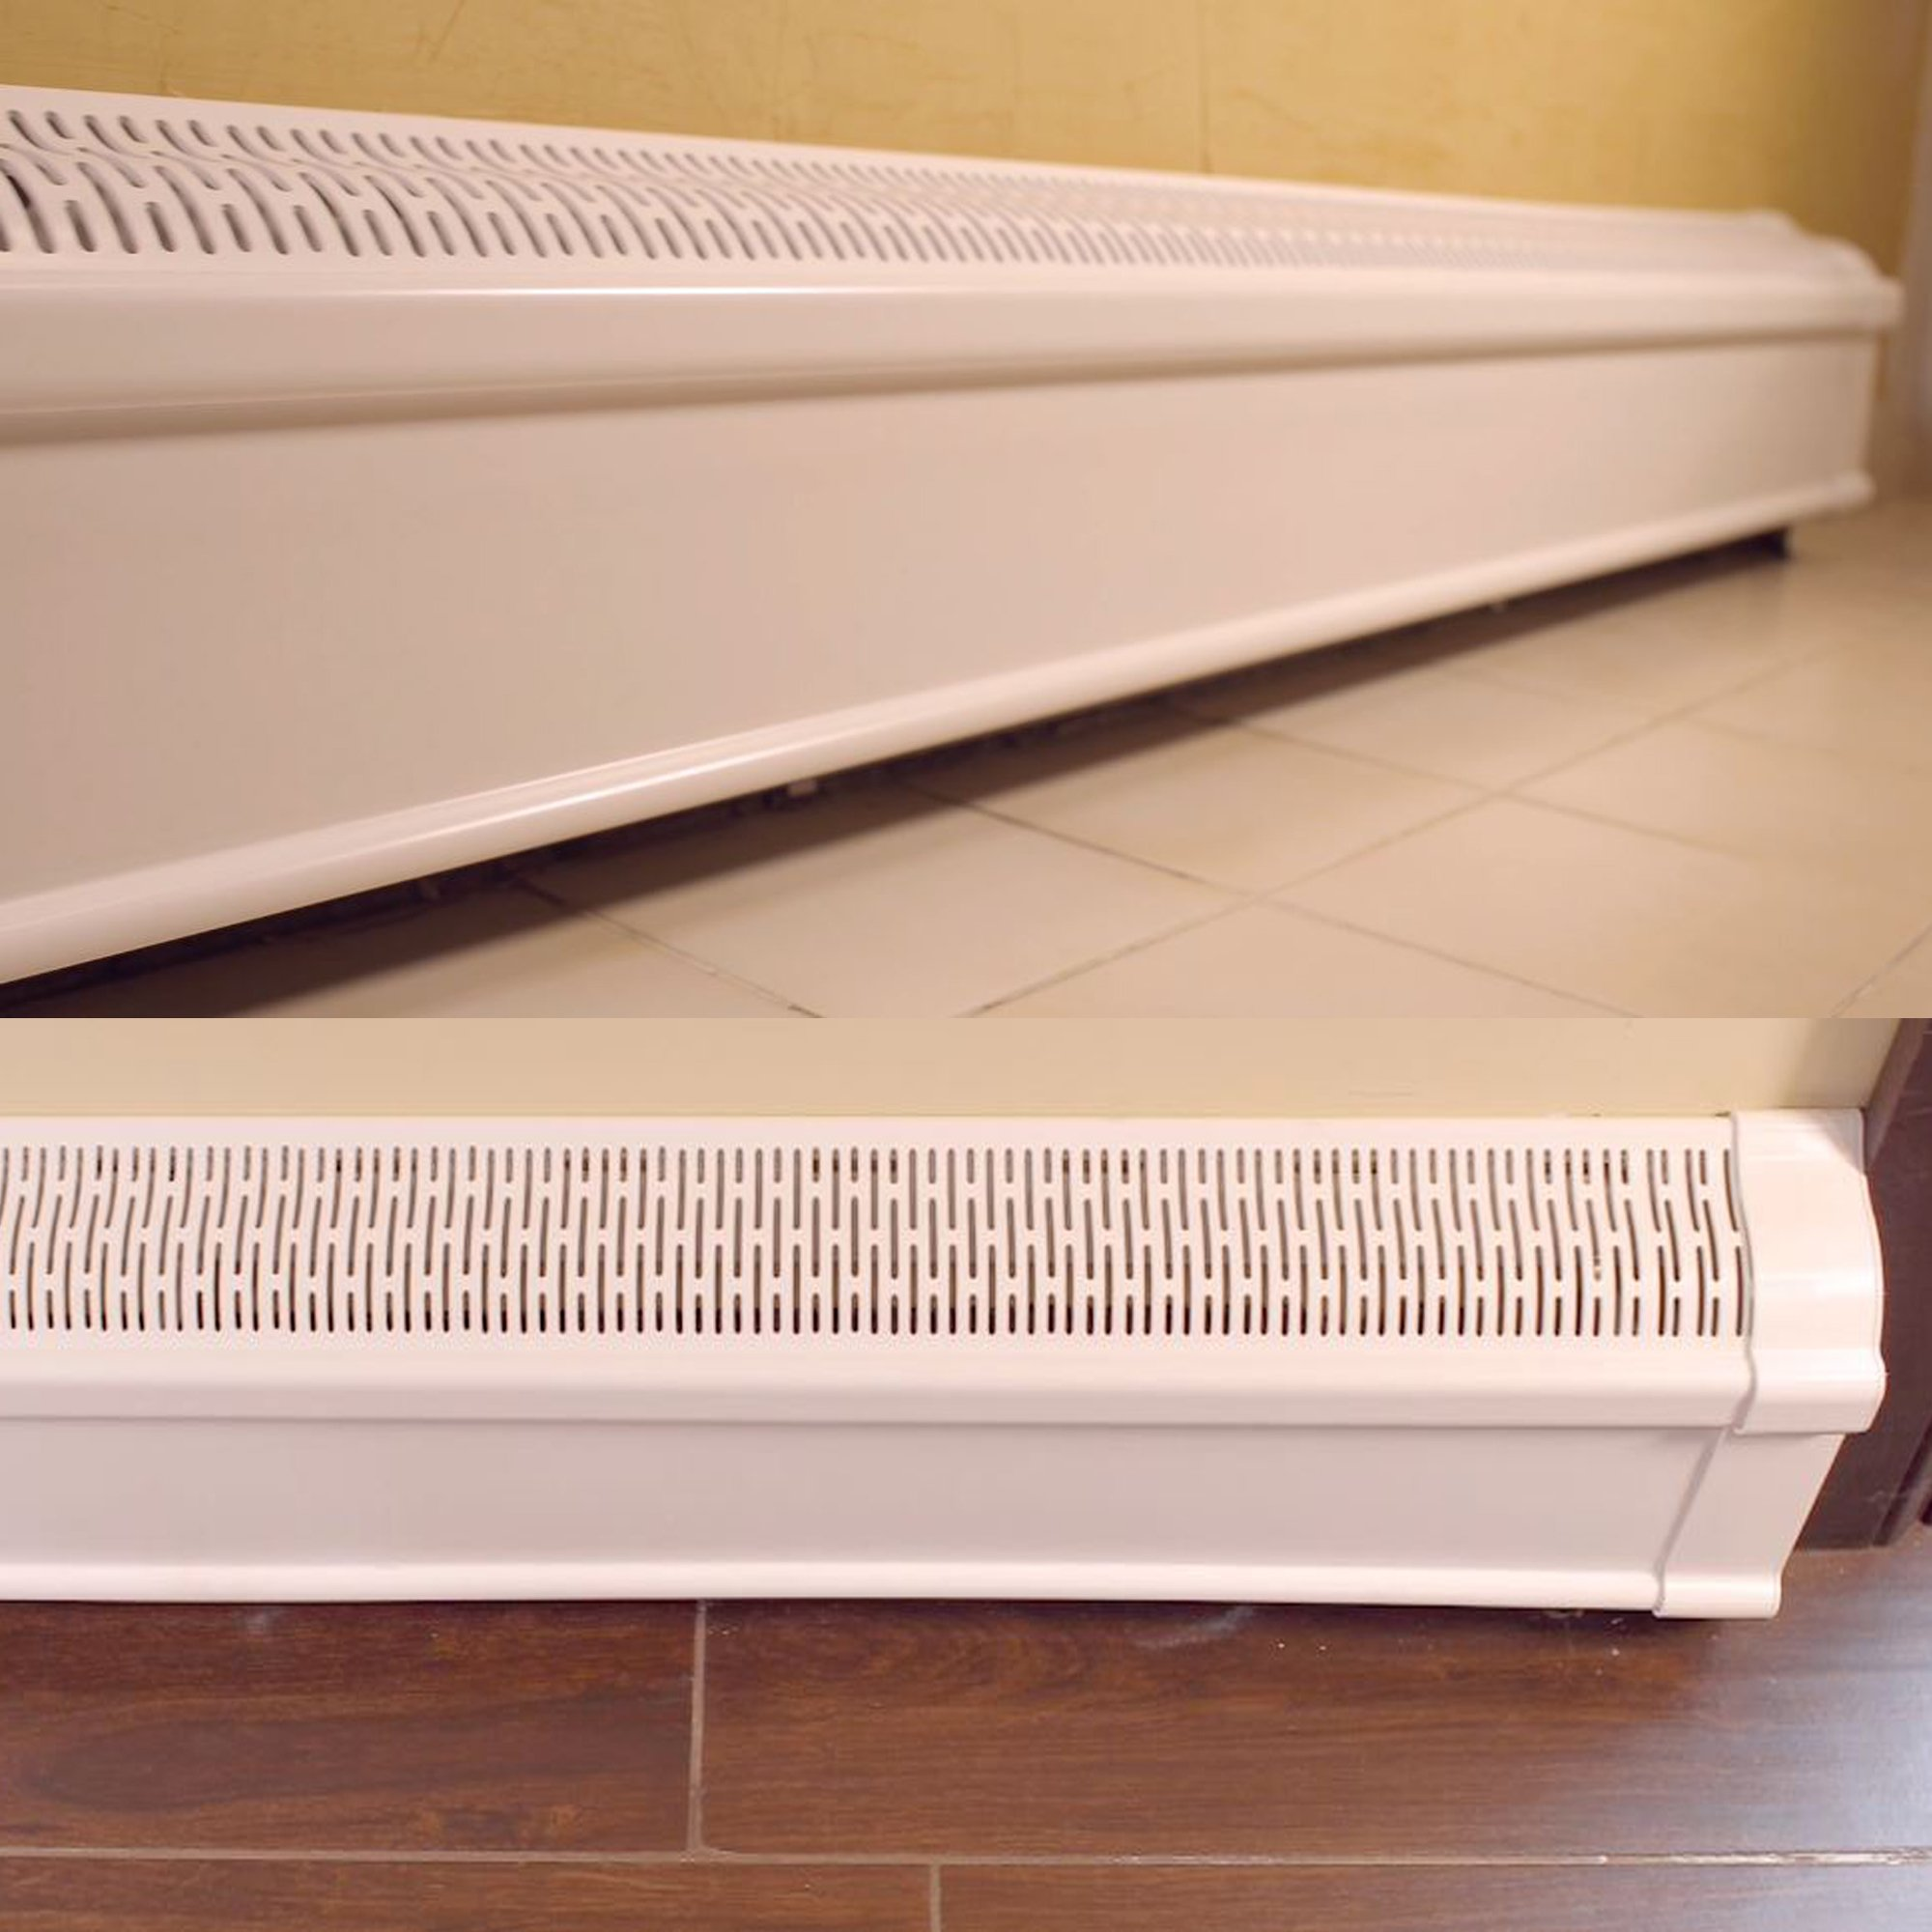 Baseboard Heater Cover COMPLETE SET with Right and Left End Caps | Hot Water, Hydronic Heater Slant Fin Baseboard Cover Enclosure Replacement Kit - 8' White / Rustproof Plastic Composite